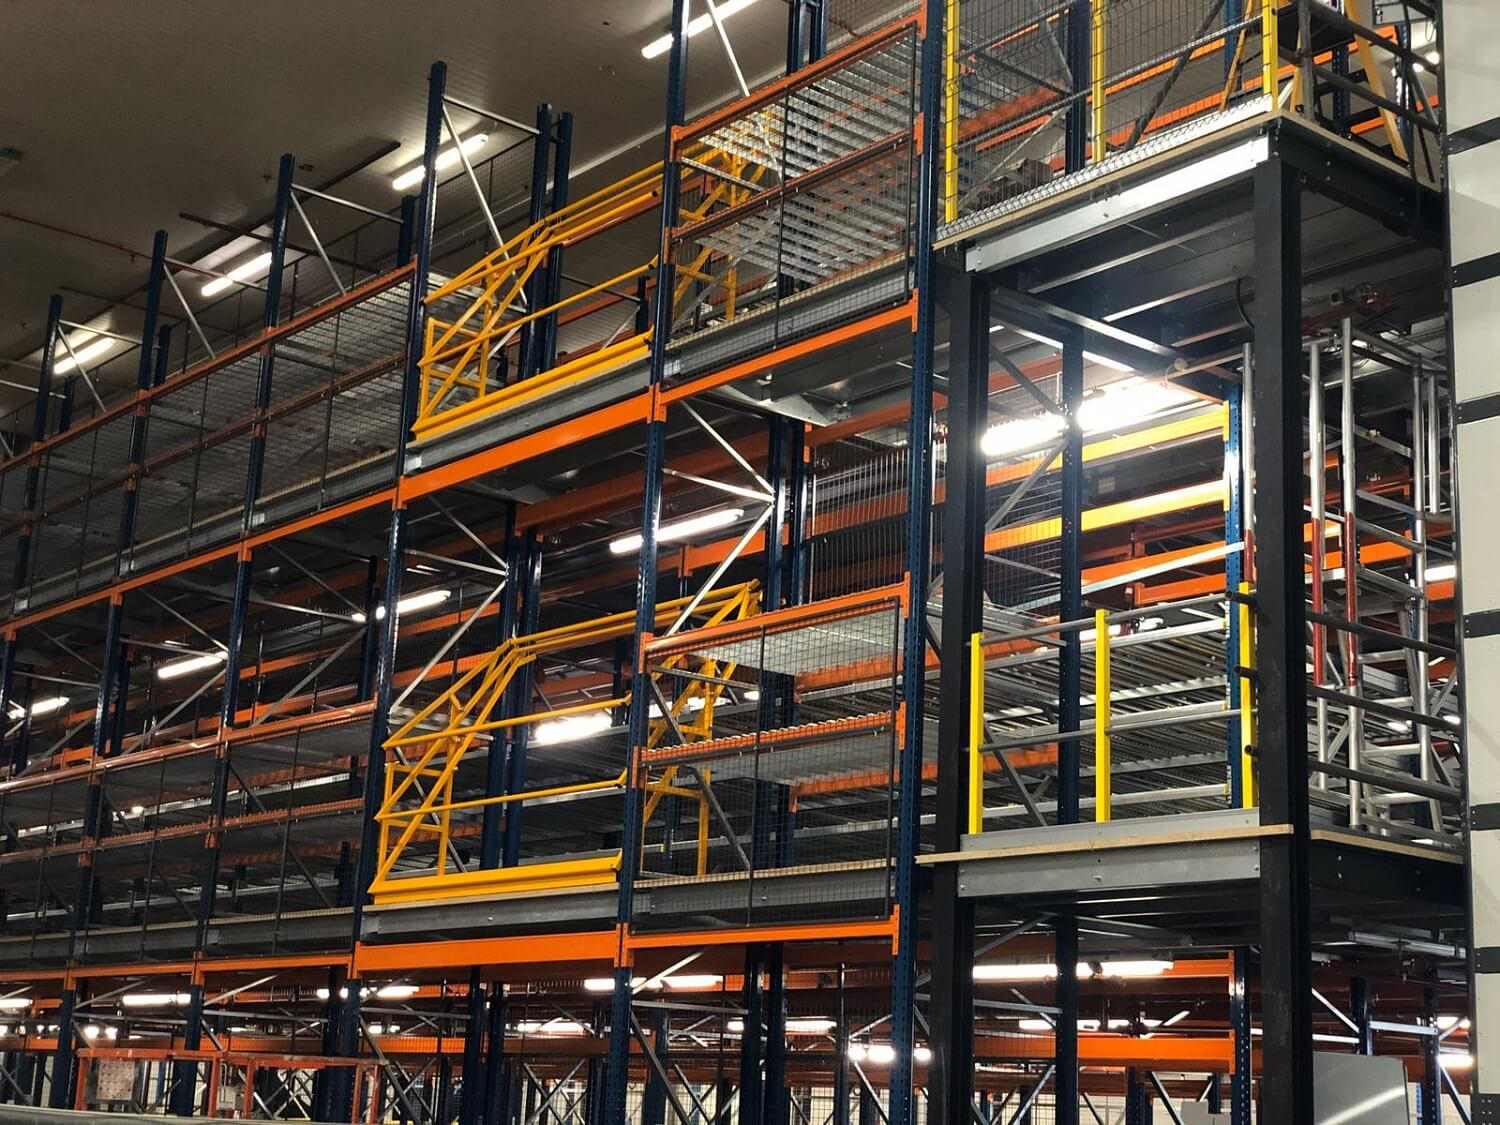 Multi tier pallet racking system with mezzanine floor and pallet gates